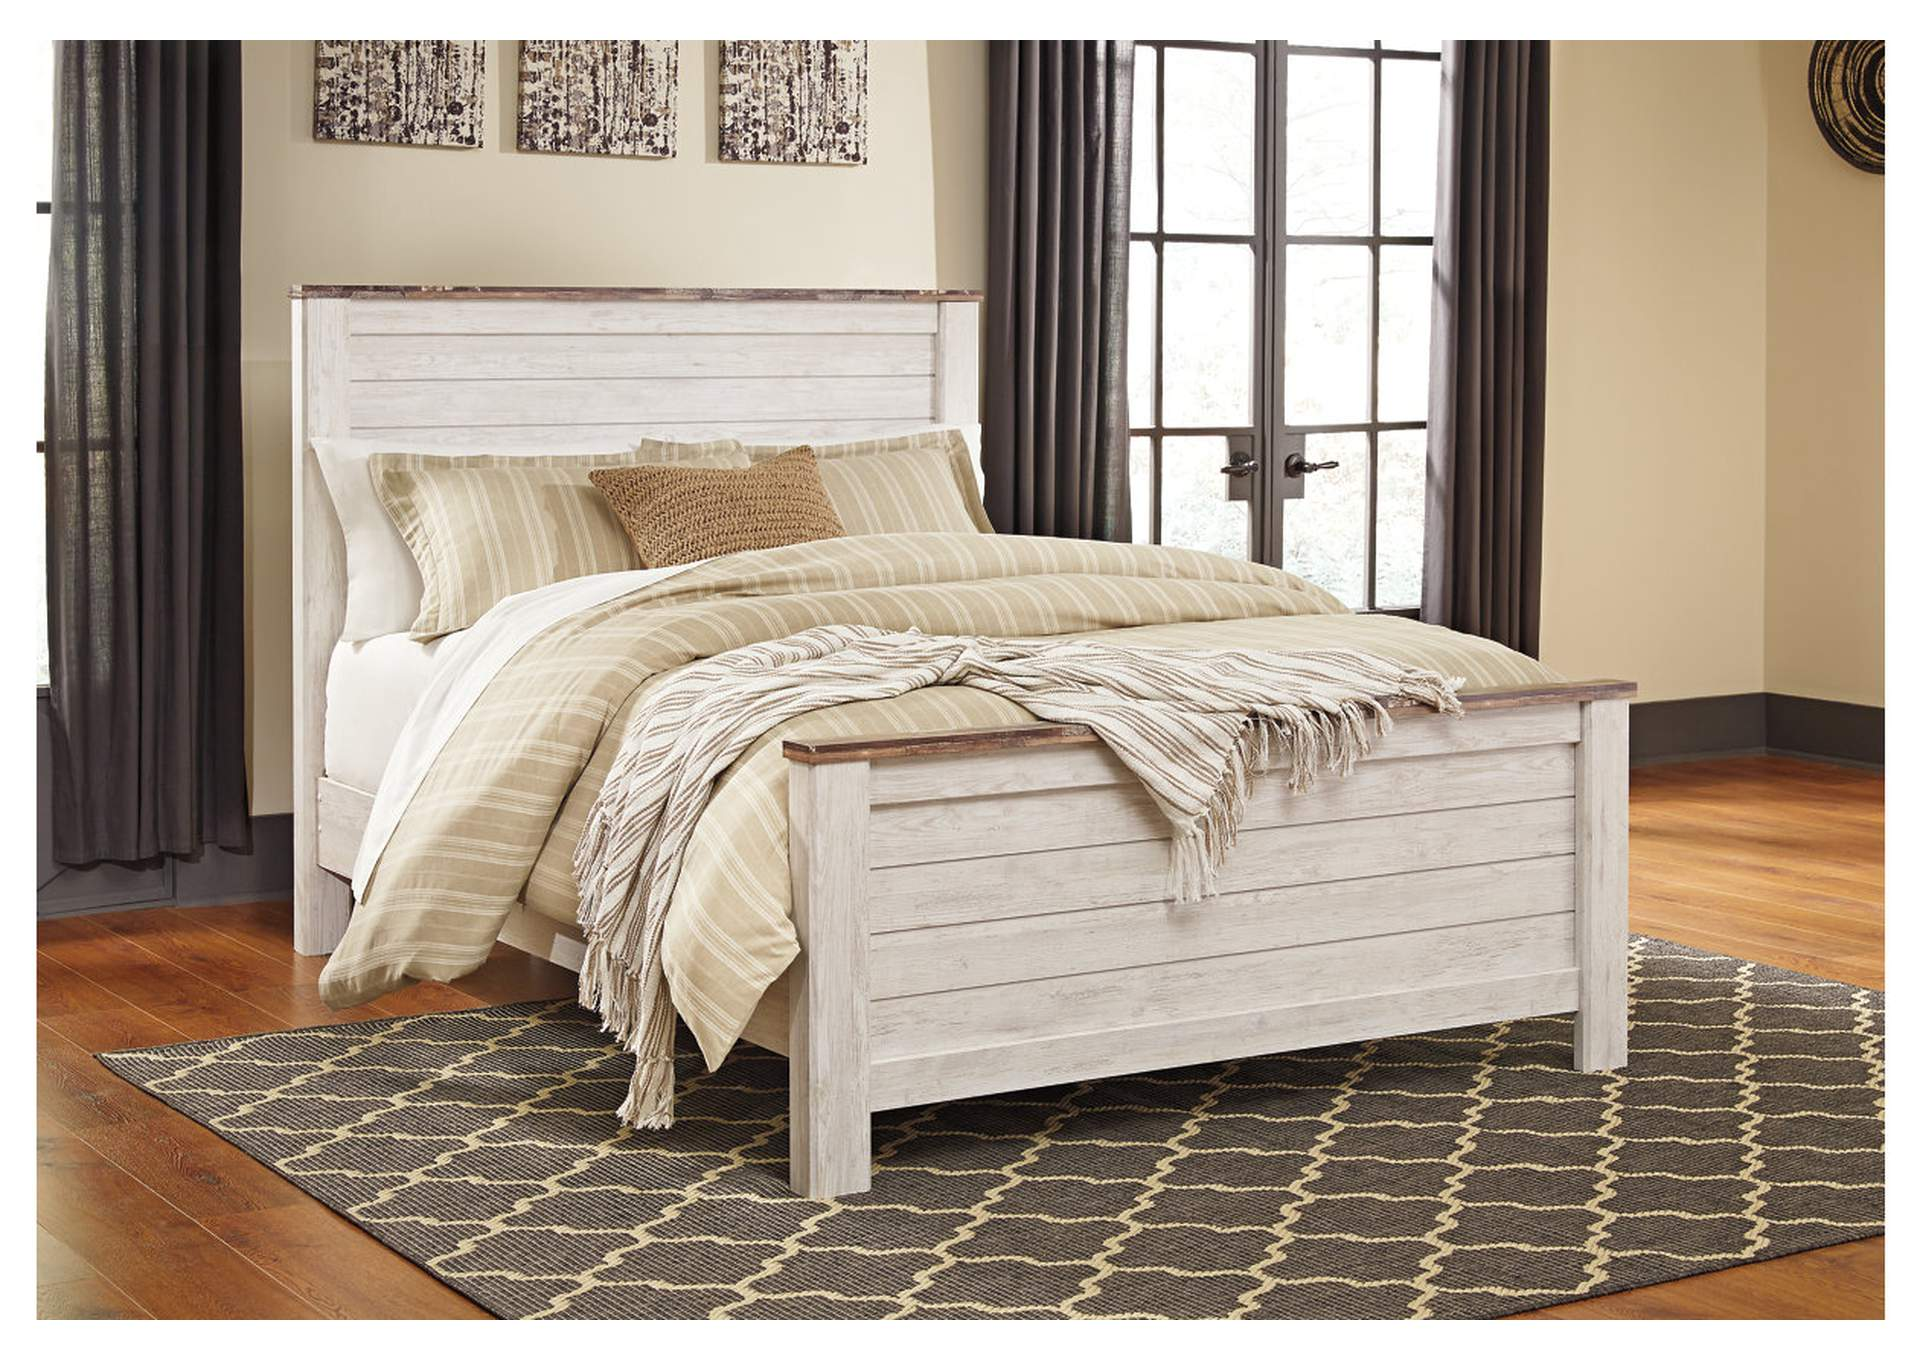 Willowton Whitewash Queen Panel Bed,Signature Design By Ashley